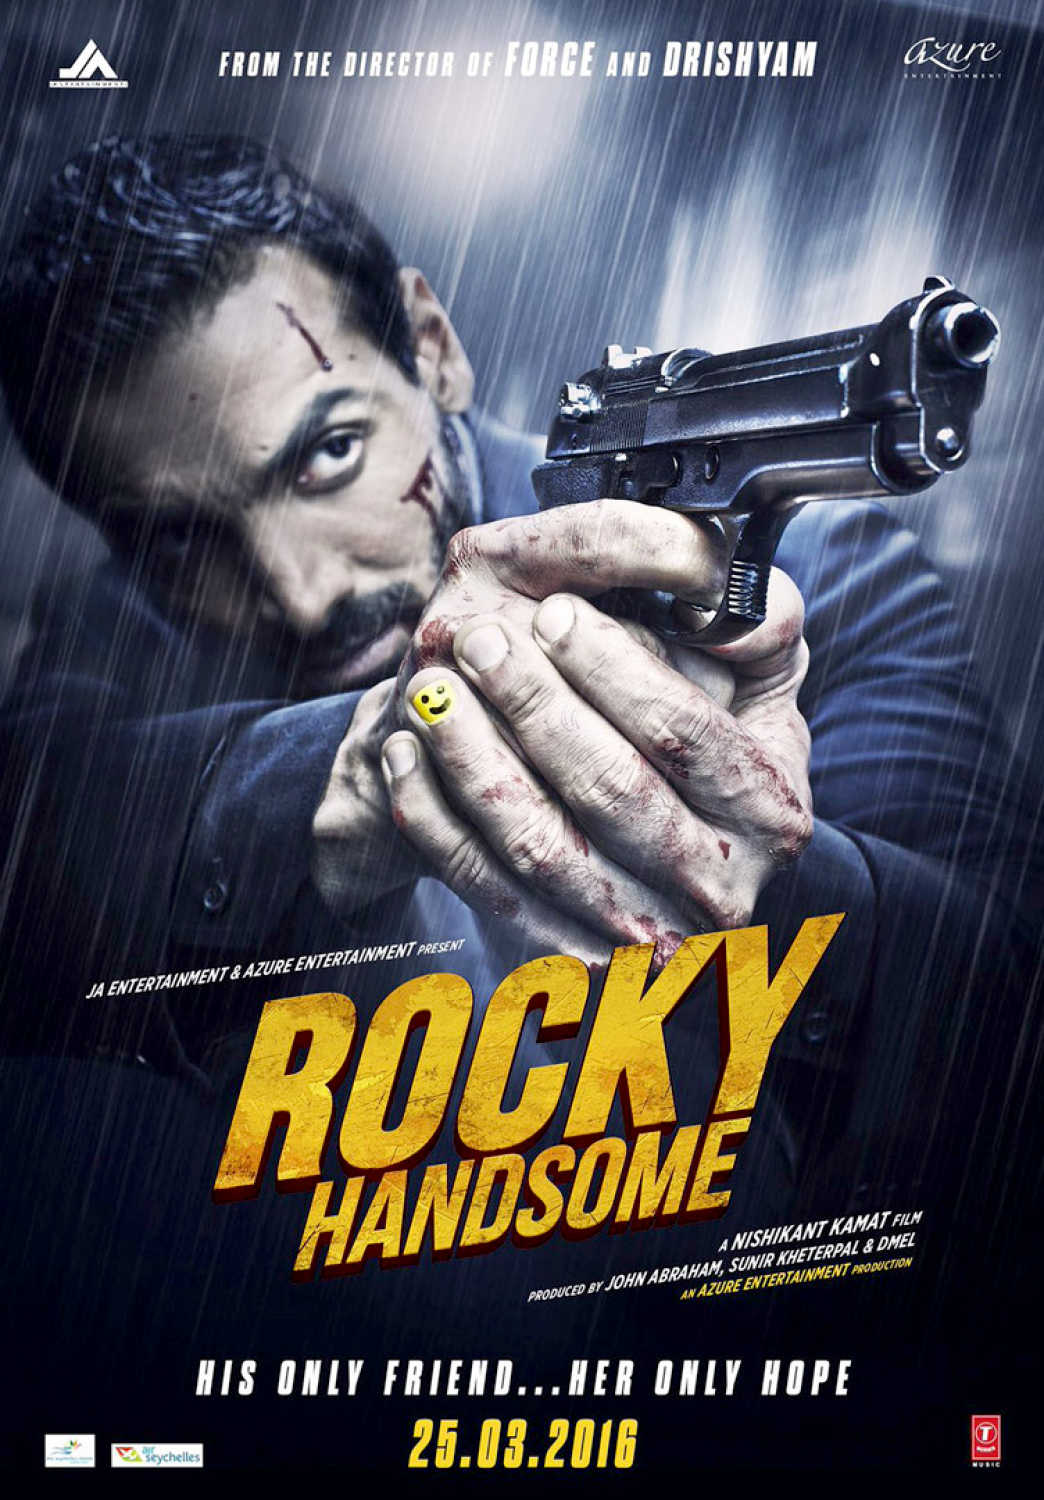 Rocky Handsome (2016) - Review, Star Cast, News, Photos | Cinestaan